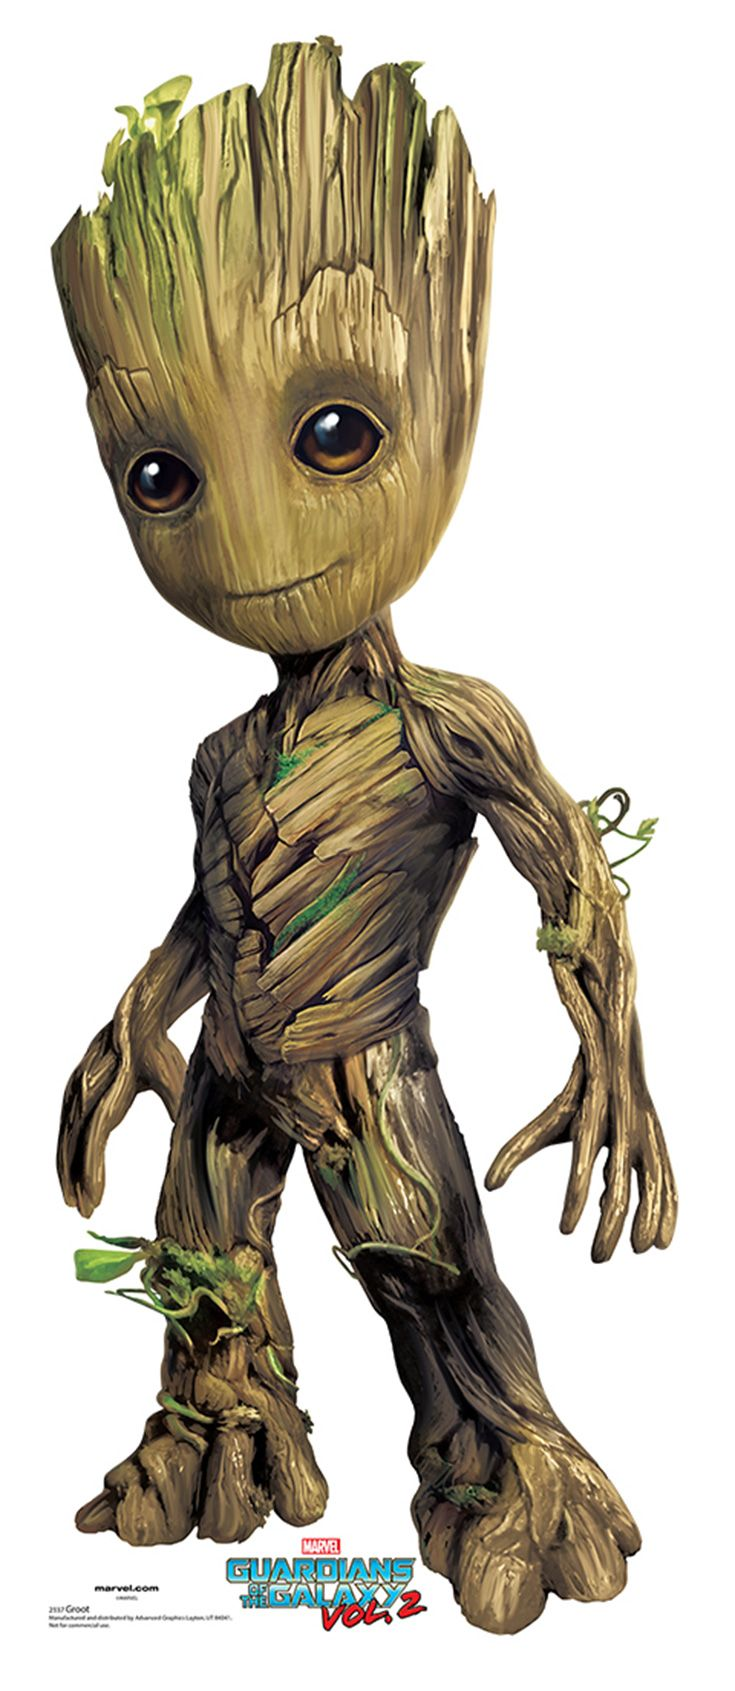 """BABY GROOT Cardboard Cutout Standup / Standee from """"Guardians of the Galaxy Vol 2 (2017)""""   Vin Diesel   36"""" H x 15"""" W   FREE Shipping"""